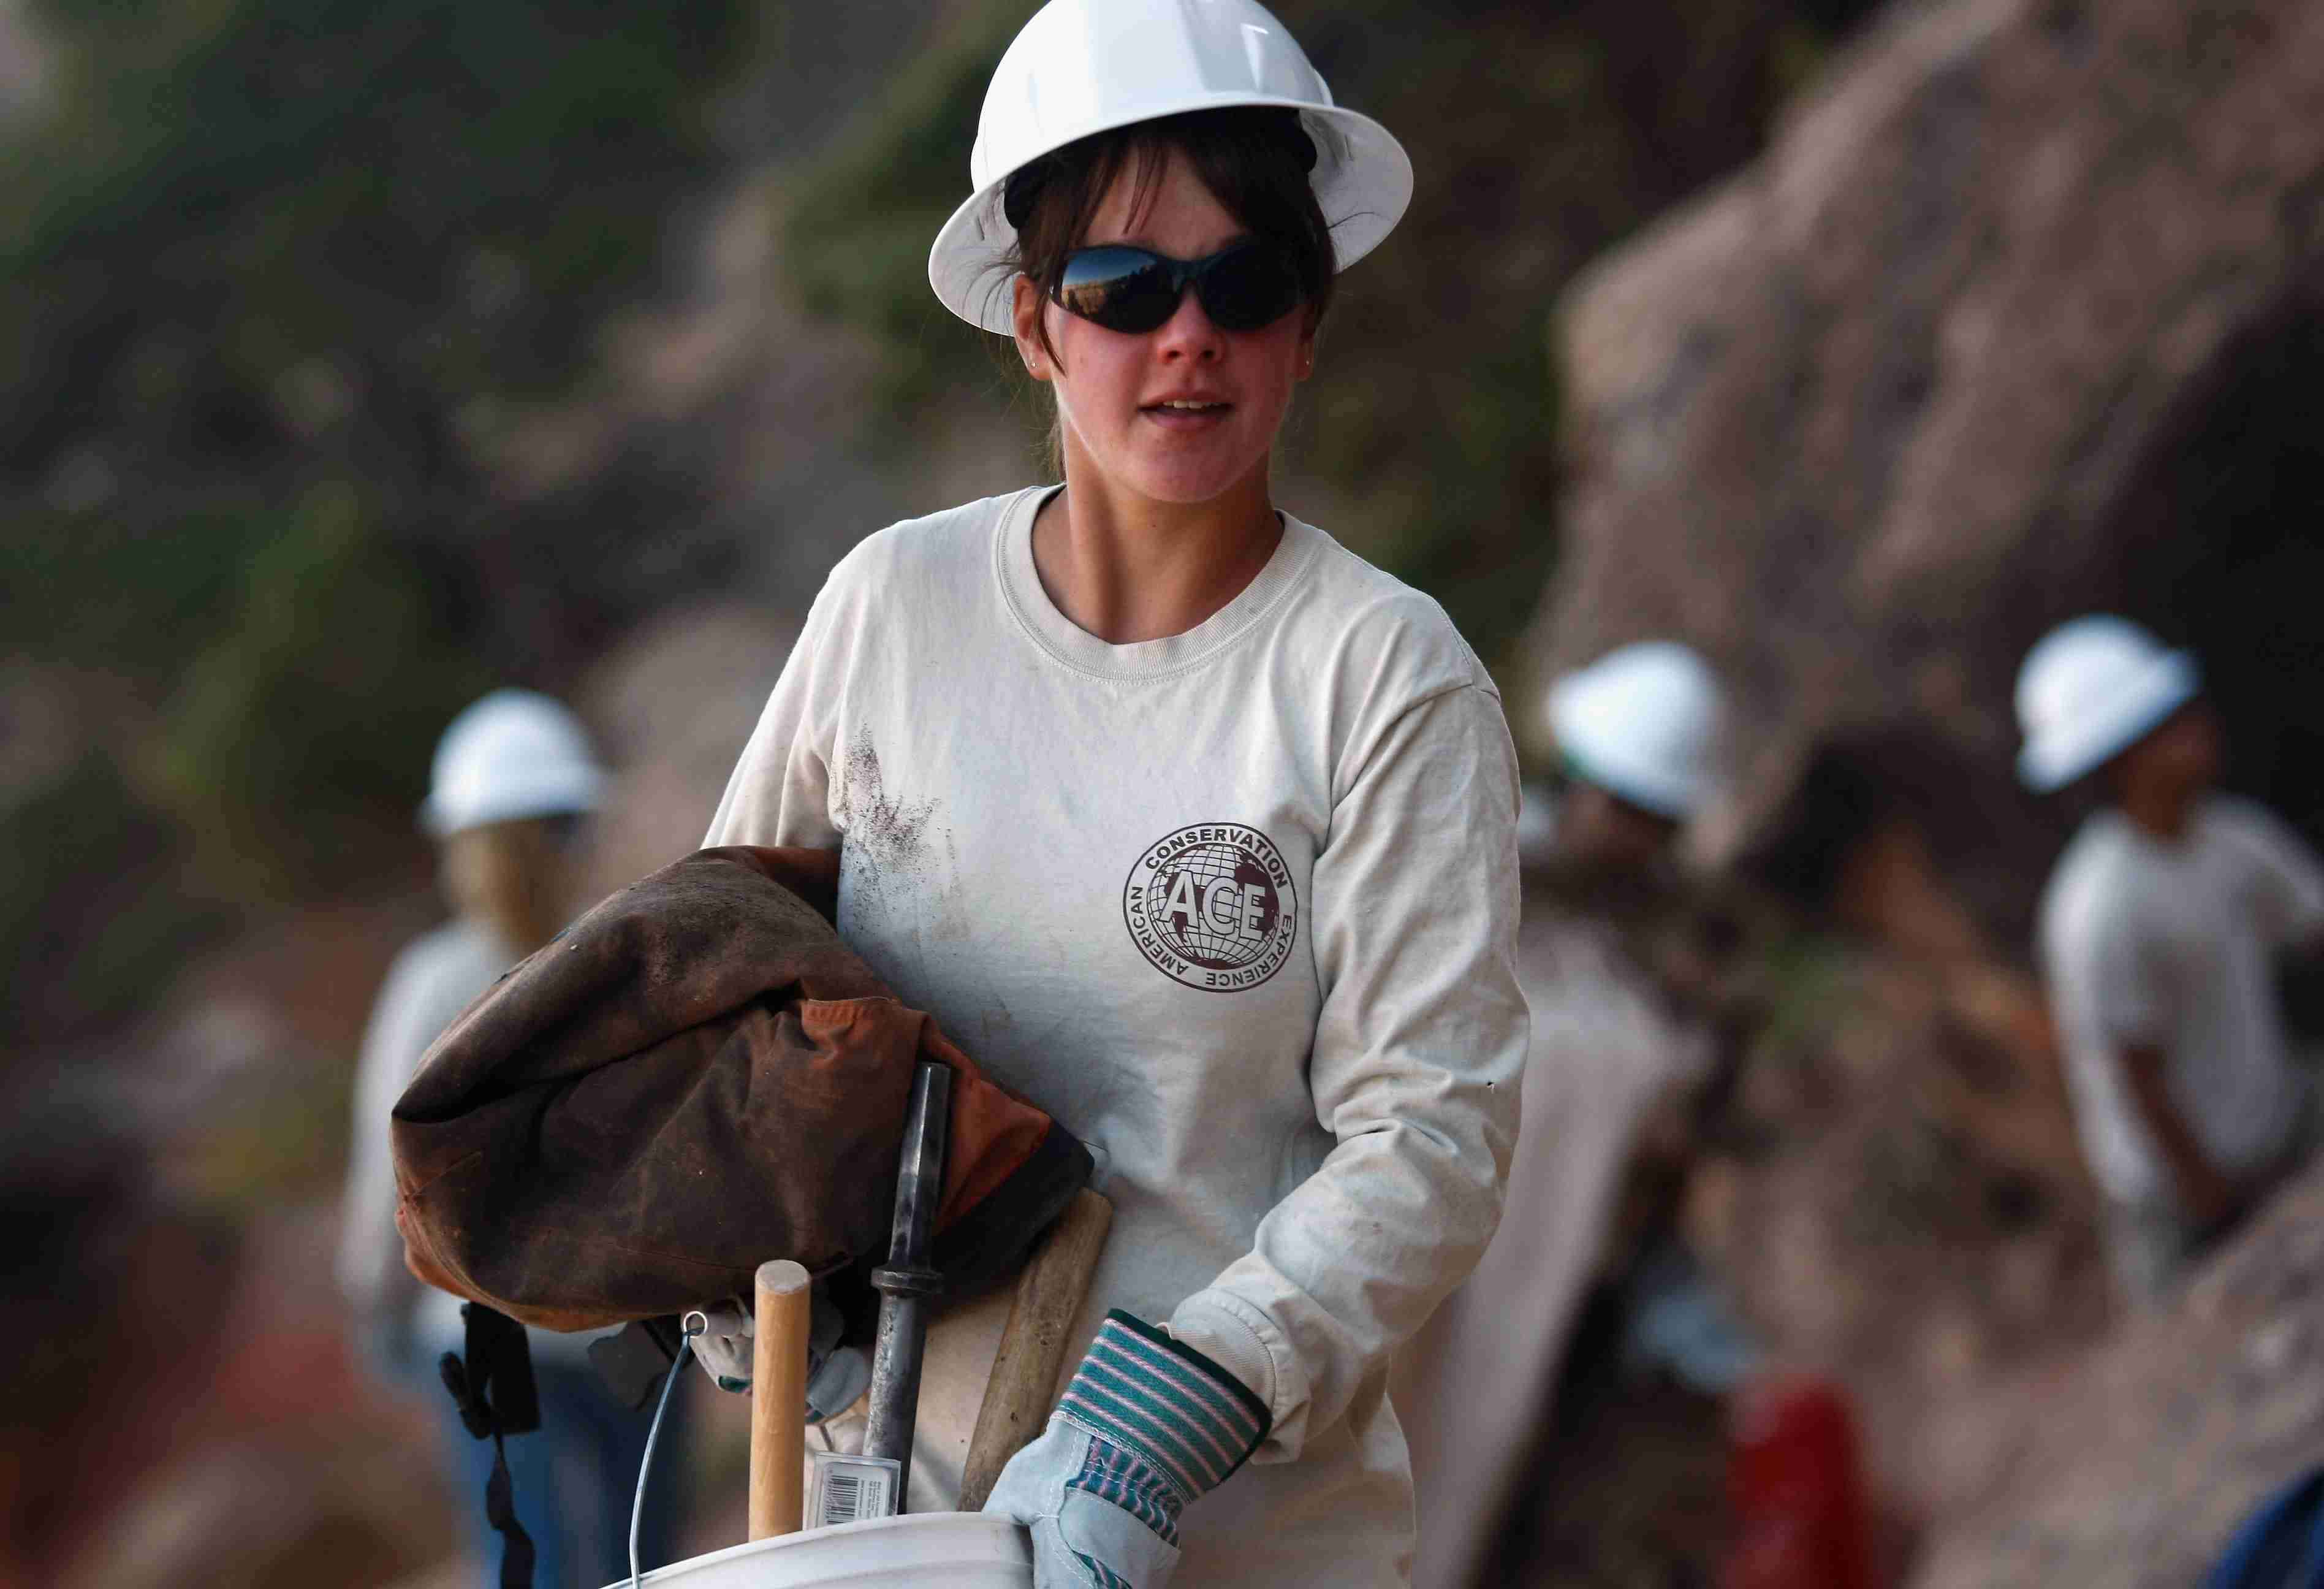 Volunteer helping to rebuild trails in Grand Canyon National Park